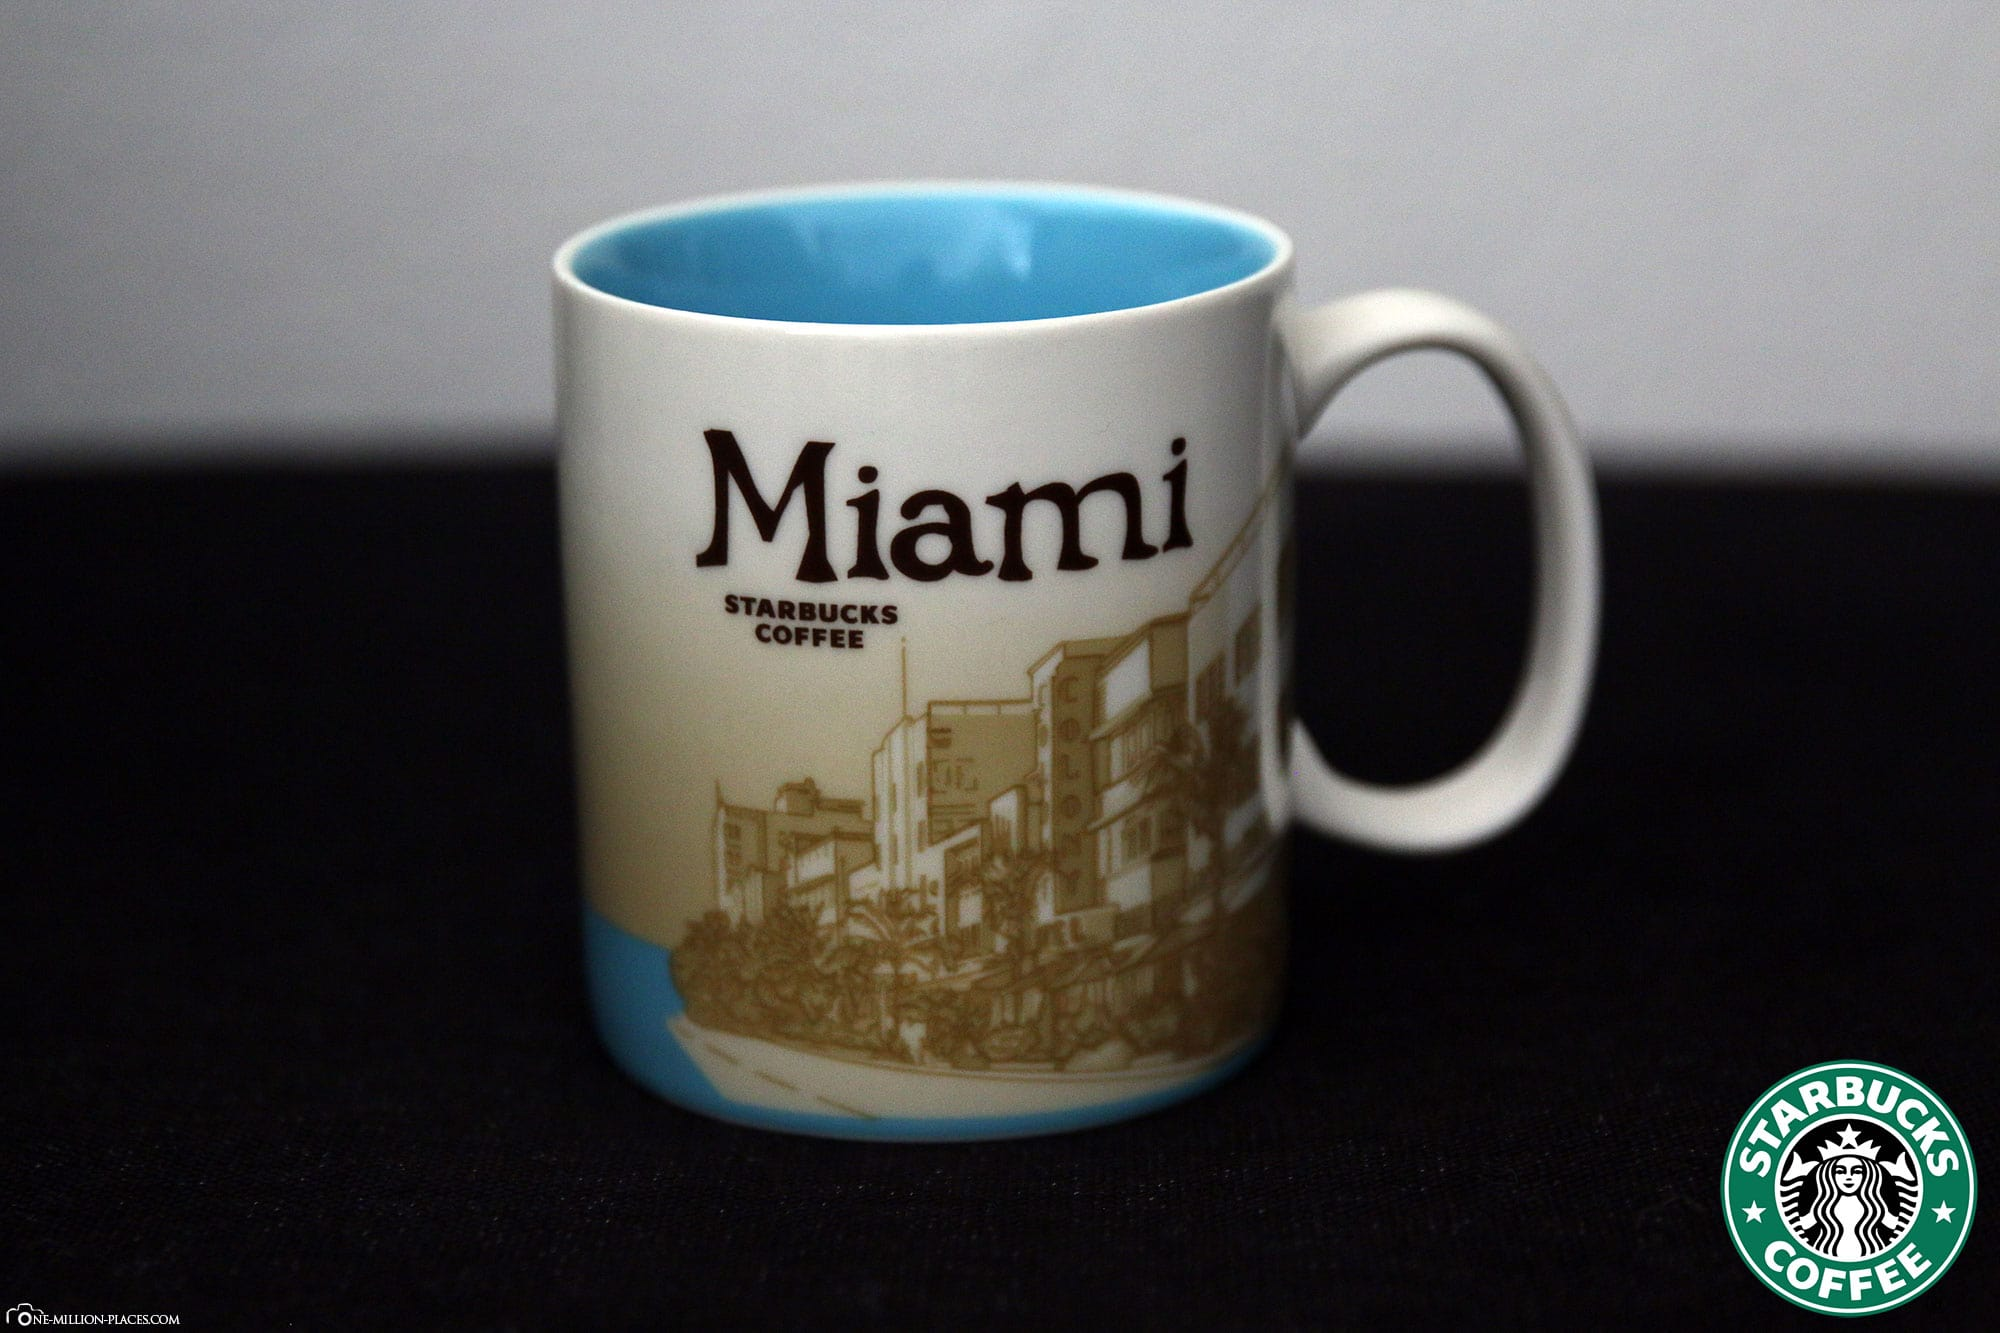 Miami, Starbucks Cup, Global Icon Series, City Mugs, Collection, USA, Travelreport